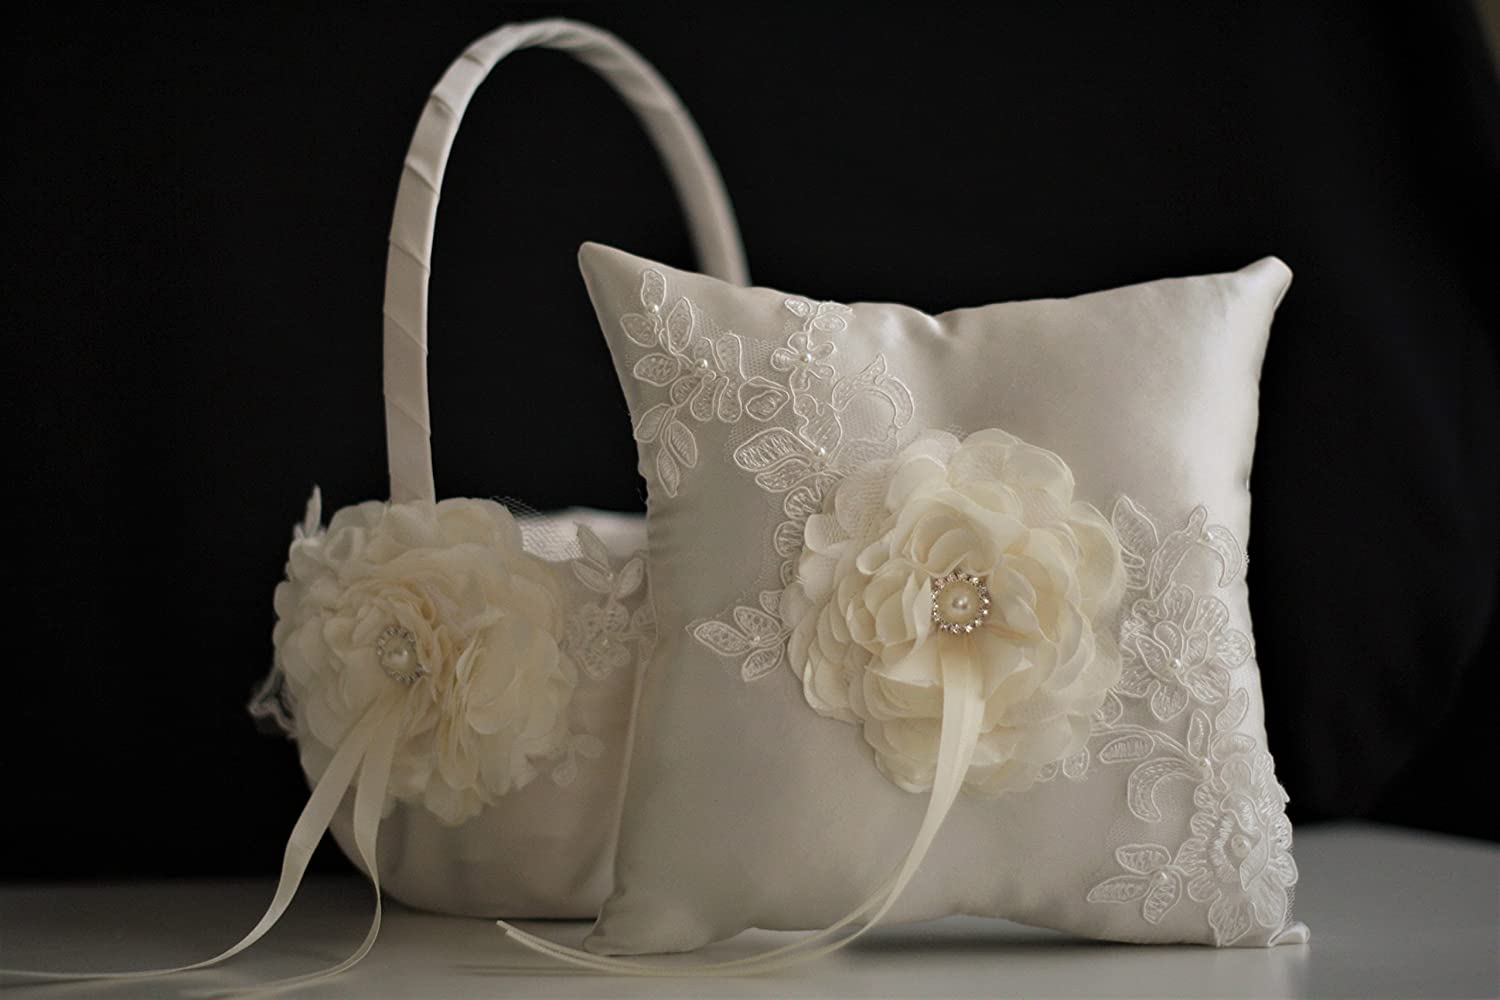 Flower girl Basket / Wedding Ring Bearer Pillow Set Ivory Lace + Ivory Guest Book + Unity Candles & Champagne Glasses + Cake Serving Set